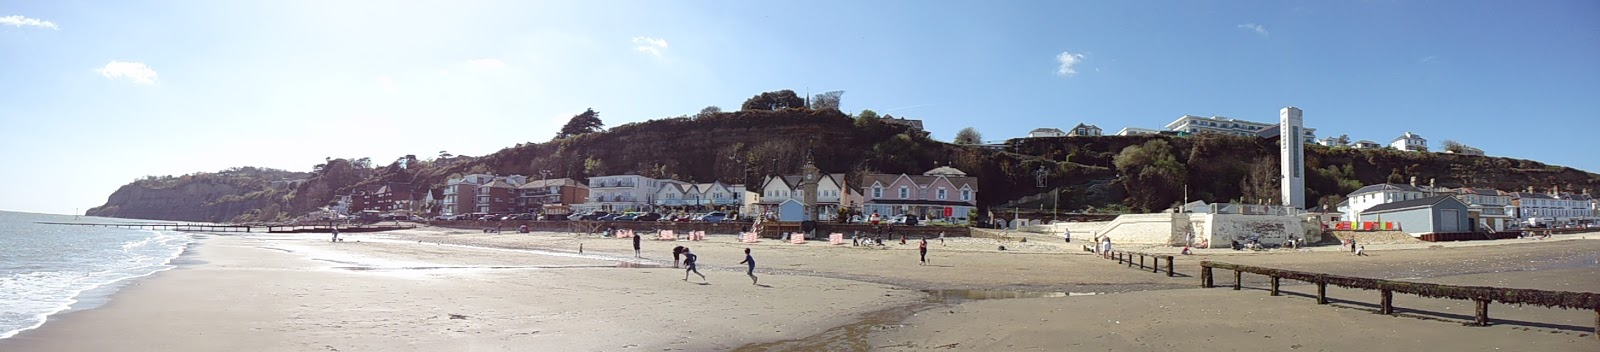 Shanklin, view from the beach